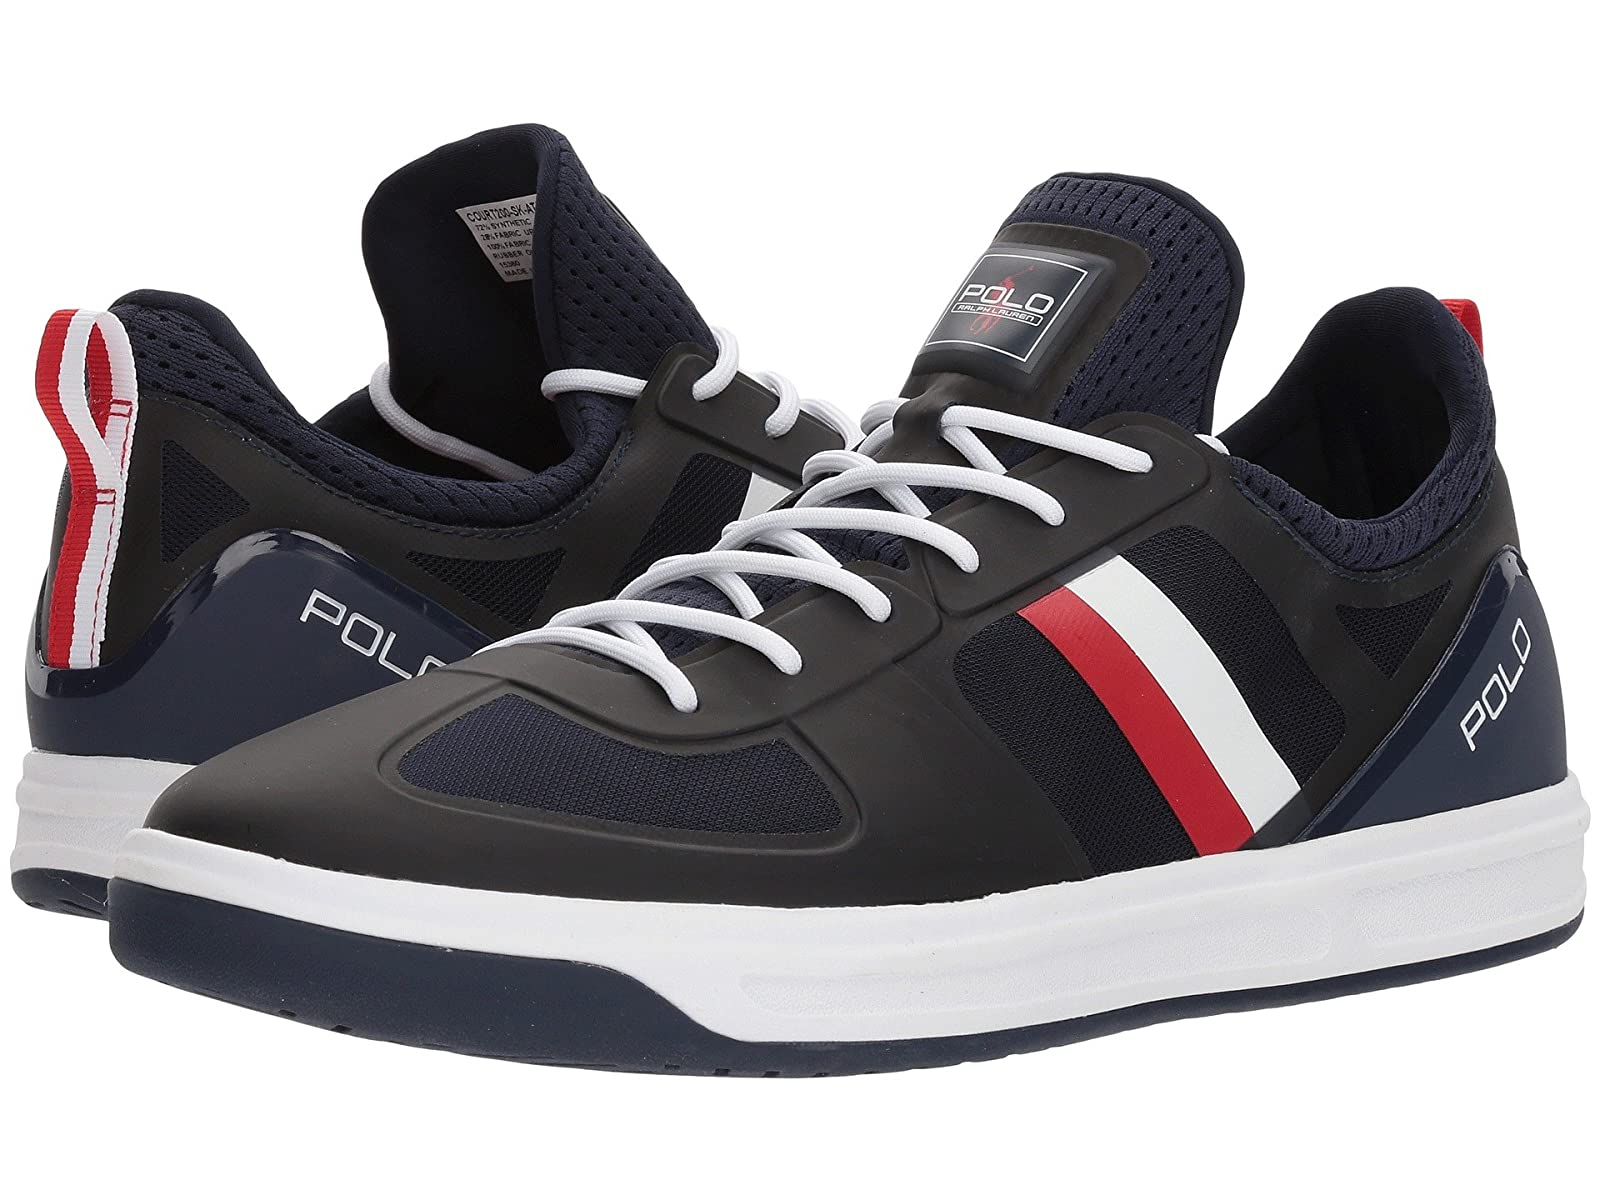 Polo Ralph Lauren Court 200Atmospheric grades have affordable shoes